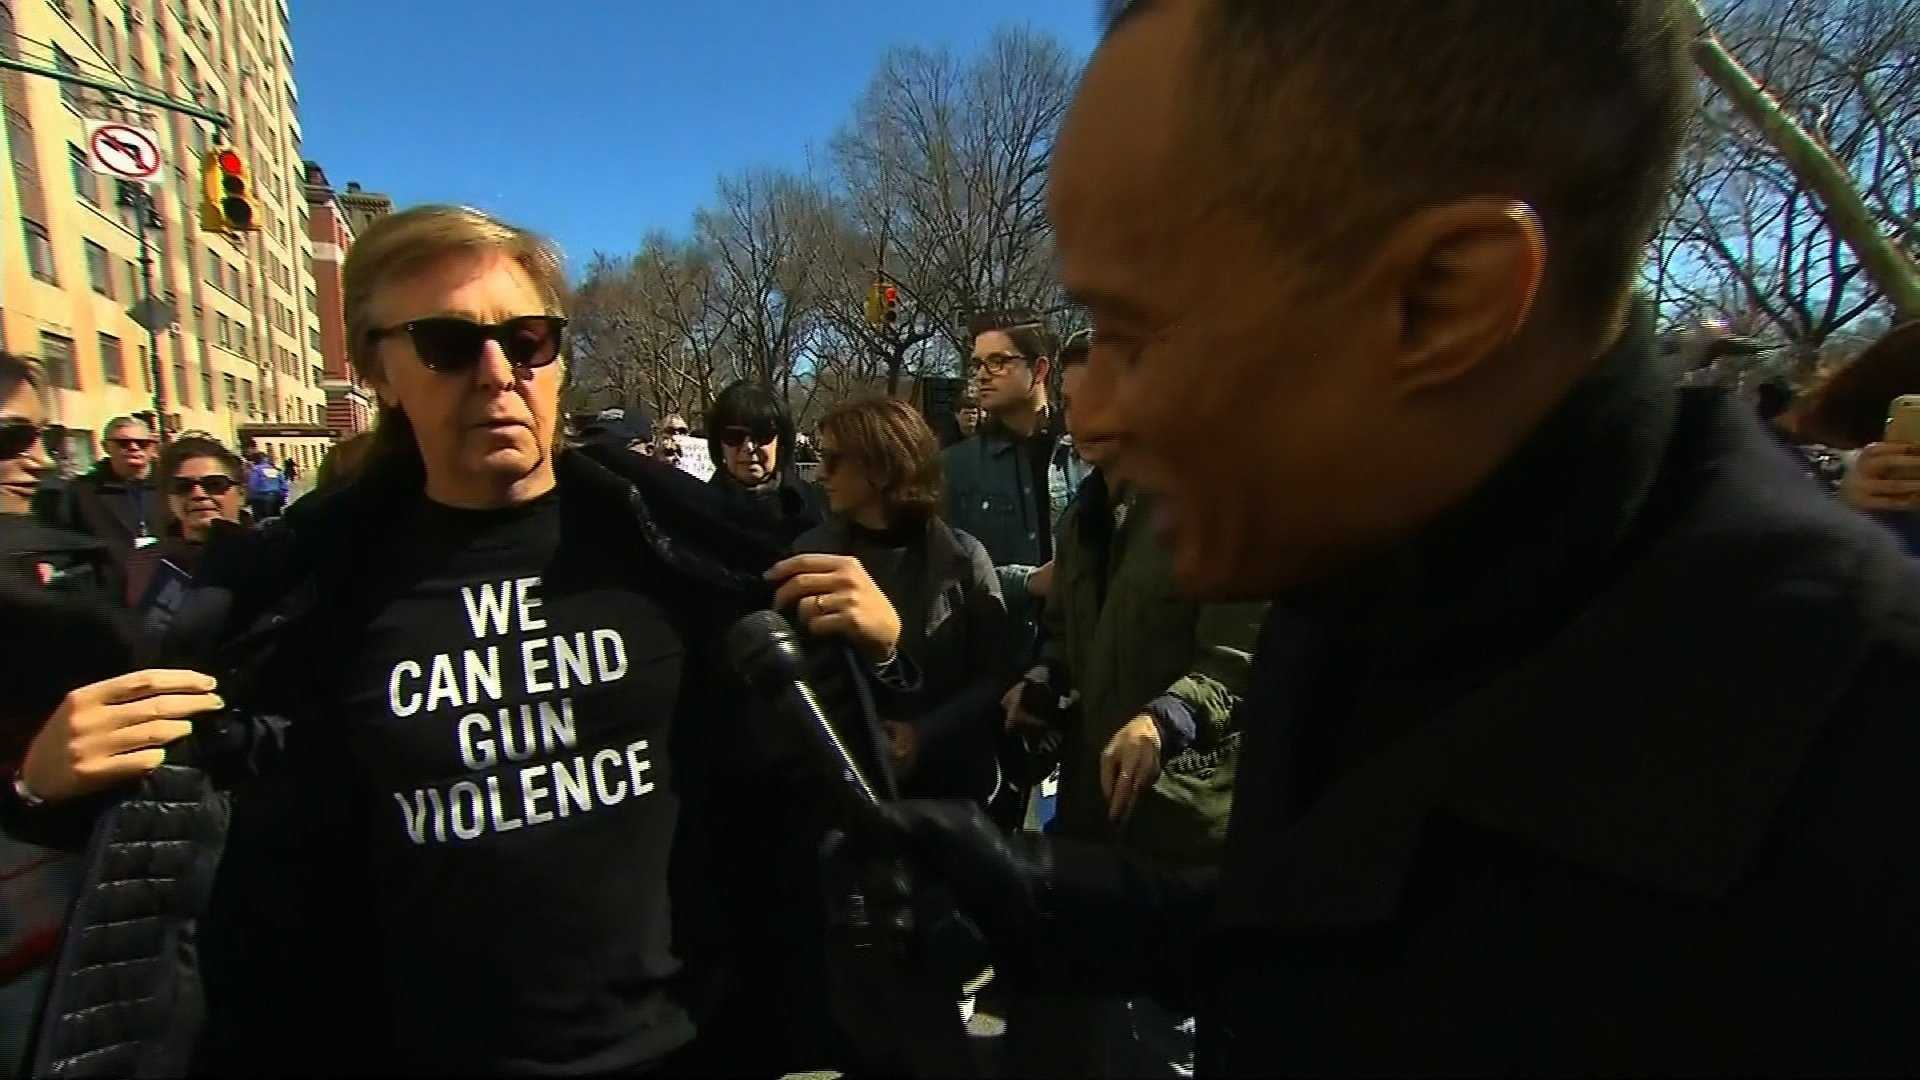 Paul McCartney attended the March for Our Lives in New York on Saturday, telling CNN the cause was important to him because he lost friend and bandmate John Lennon to gun violence.